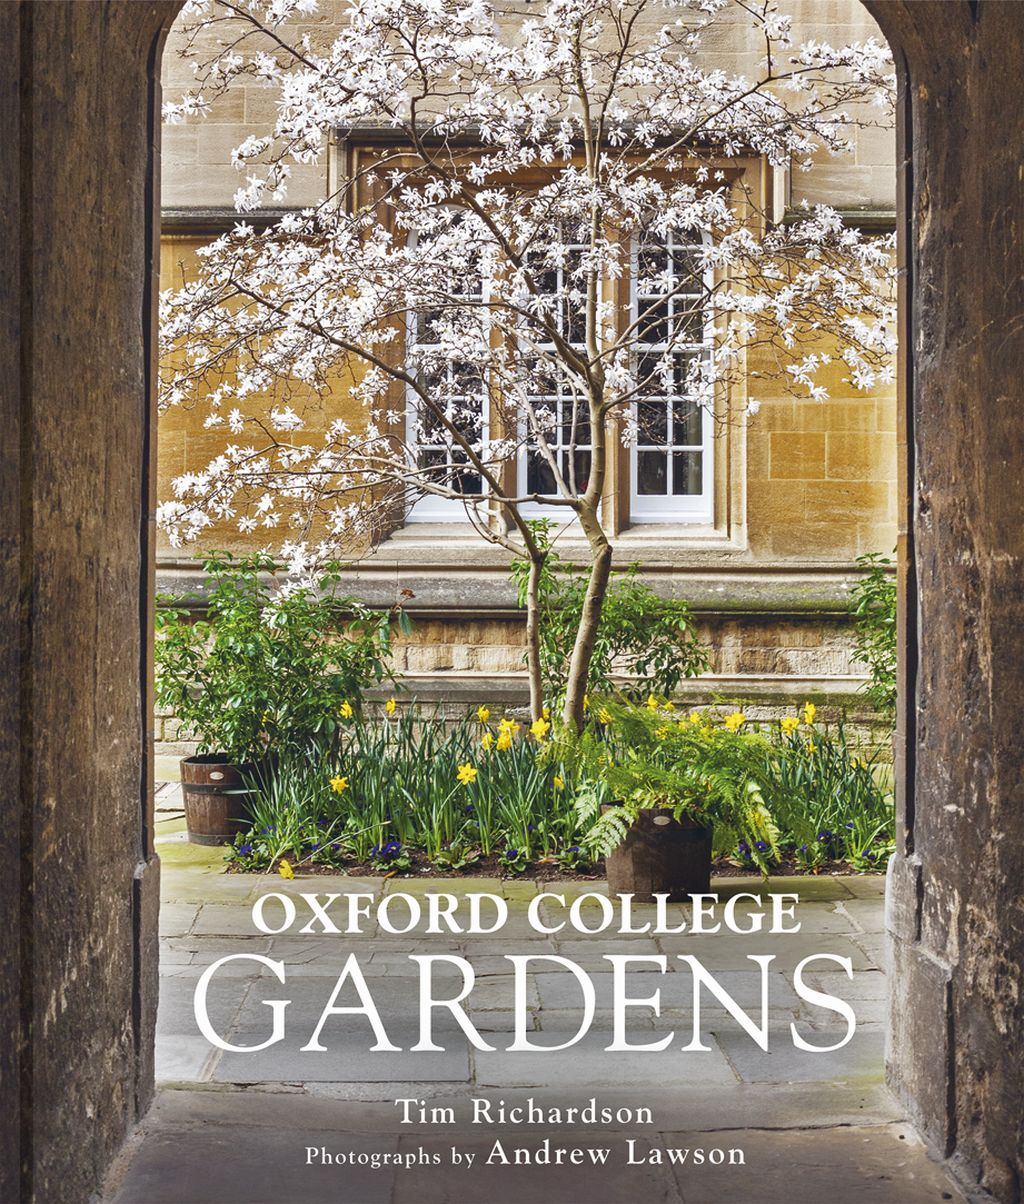 Oxford College Gardens